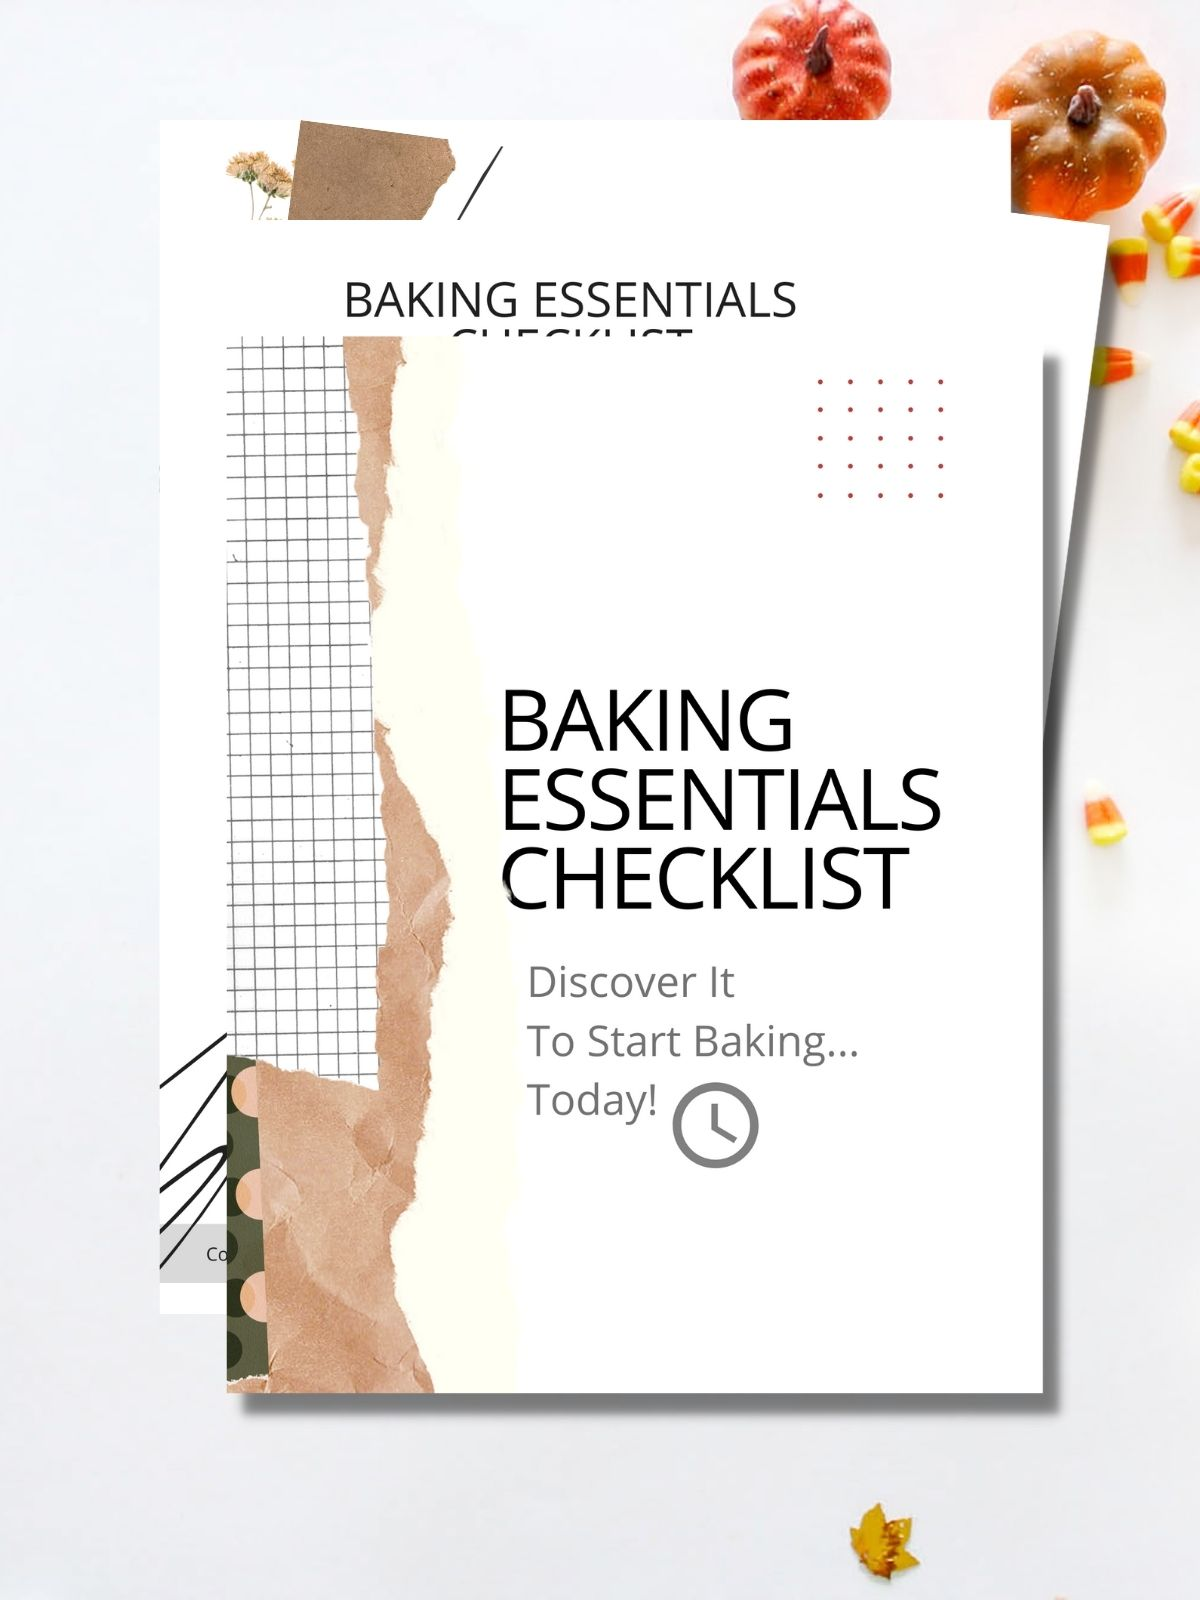 Four pages of the baking essentials checklist in the background